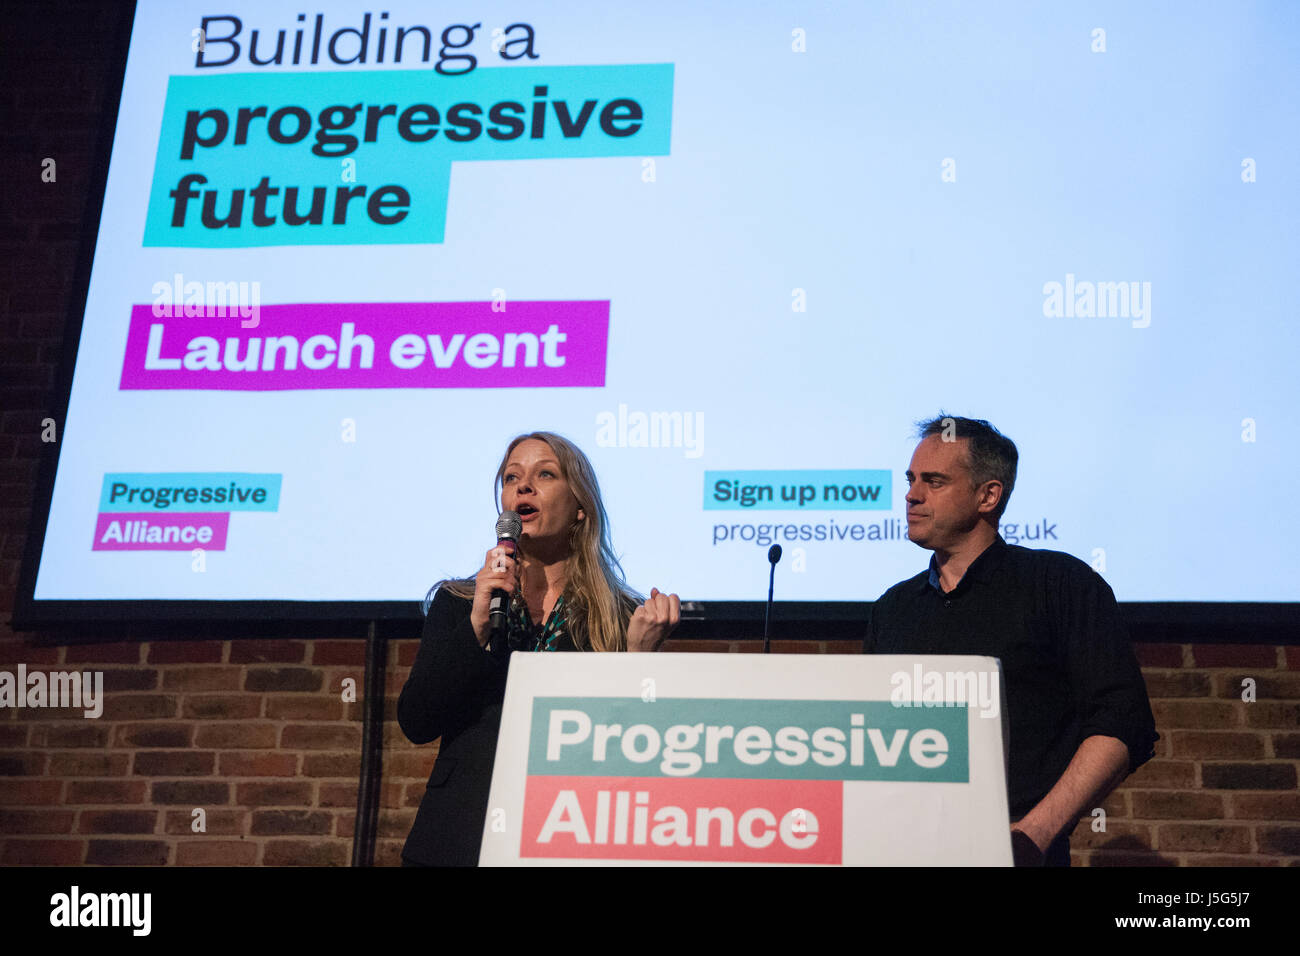 London, UK. 15th May, 2017. Sian Berry and Jonathan Bartley, Green Party co-leader, address the launch event for - Stock Image